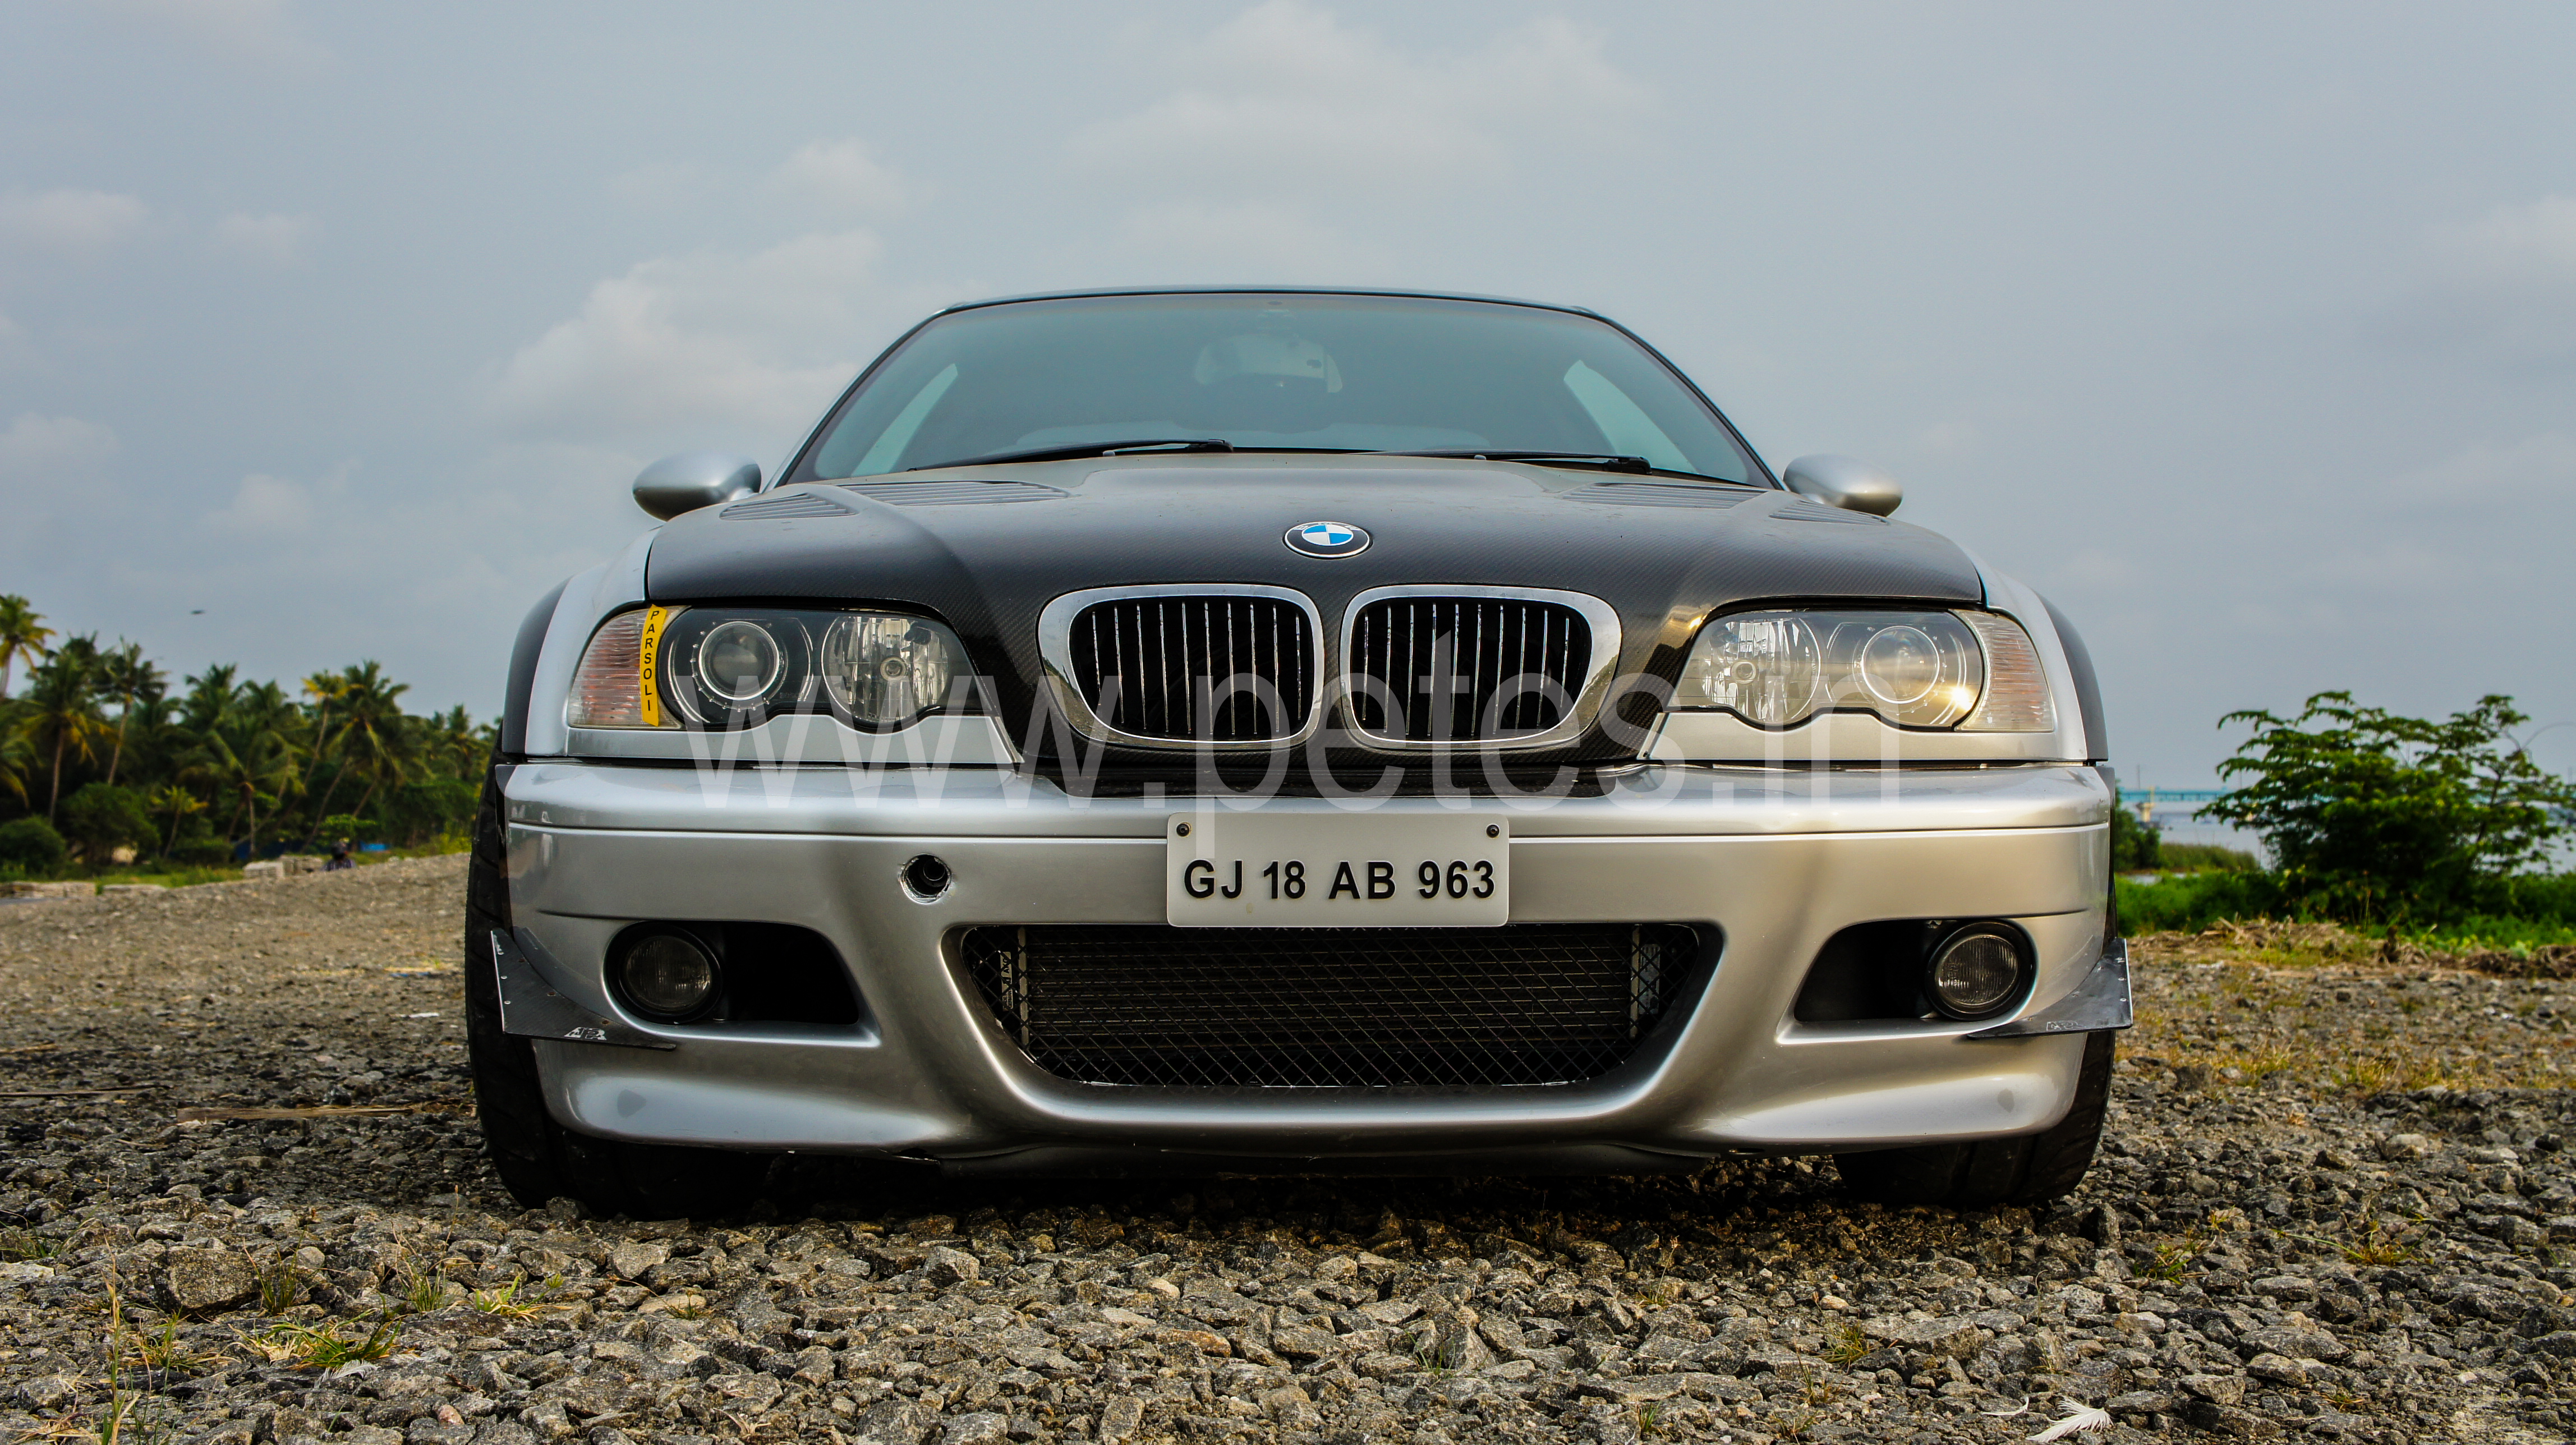 Pete S Tuned Bmw M3 Supercharged To 480hp Pete S Automotive Products Pvt Limited